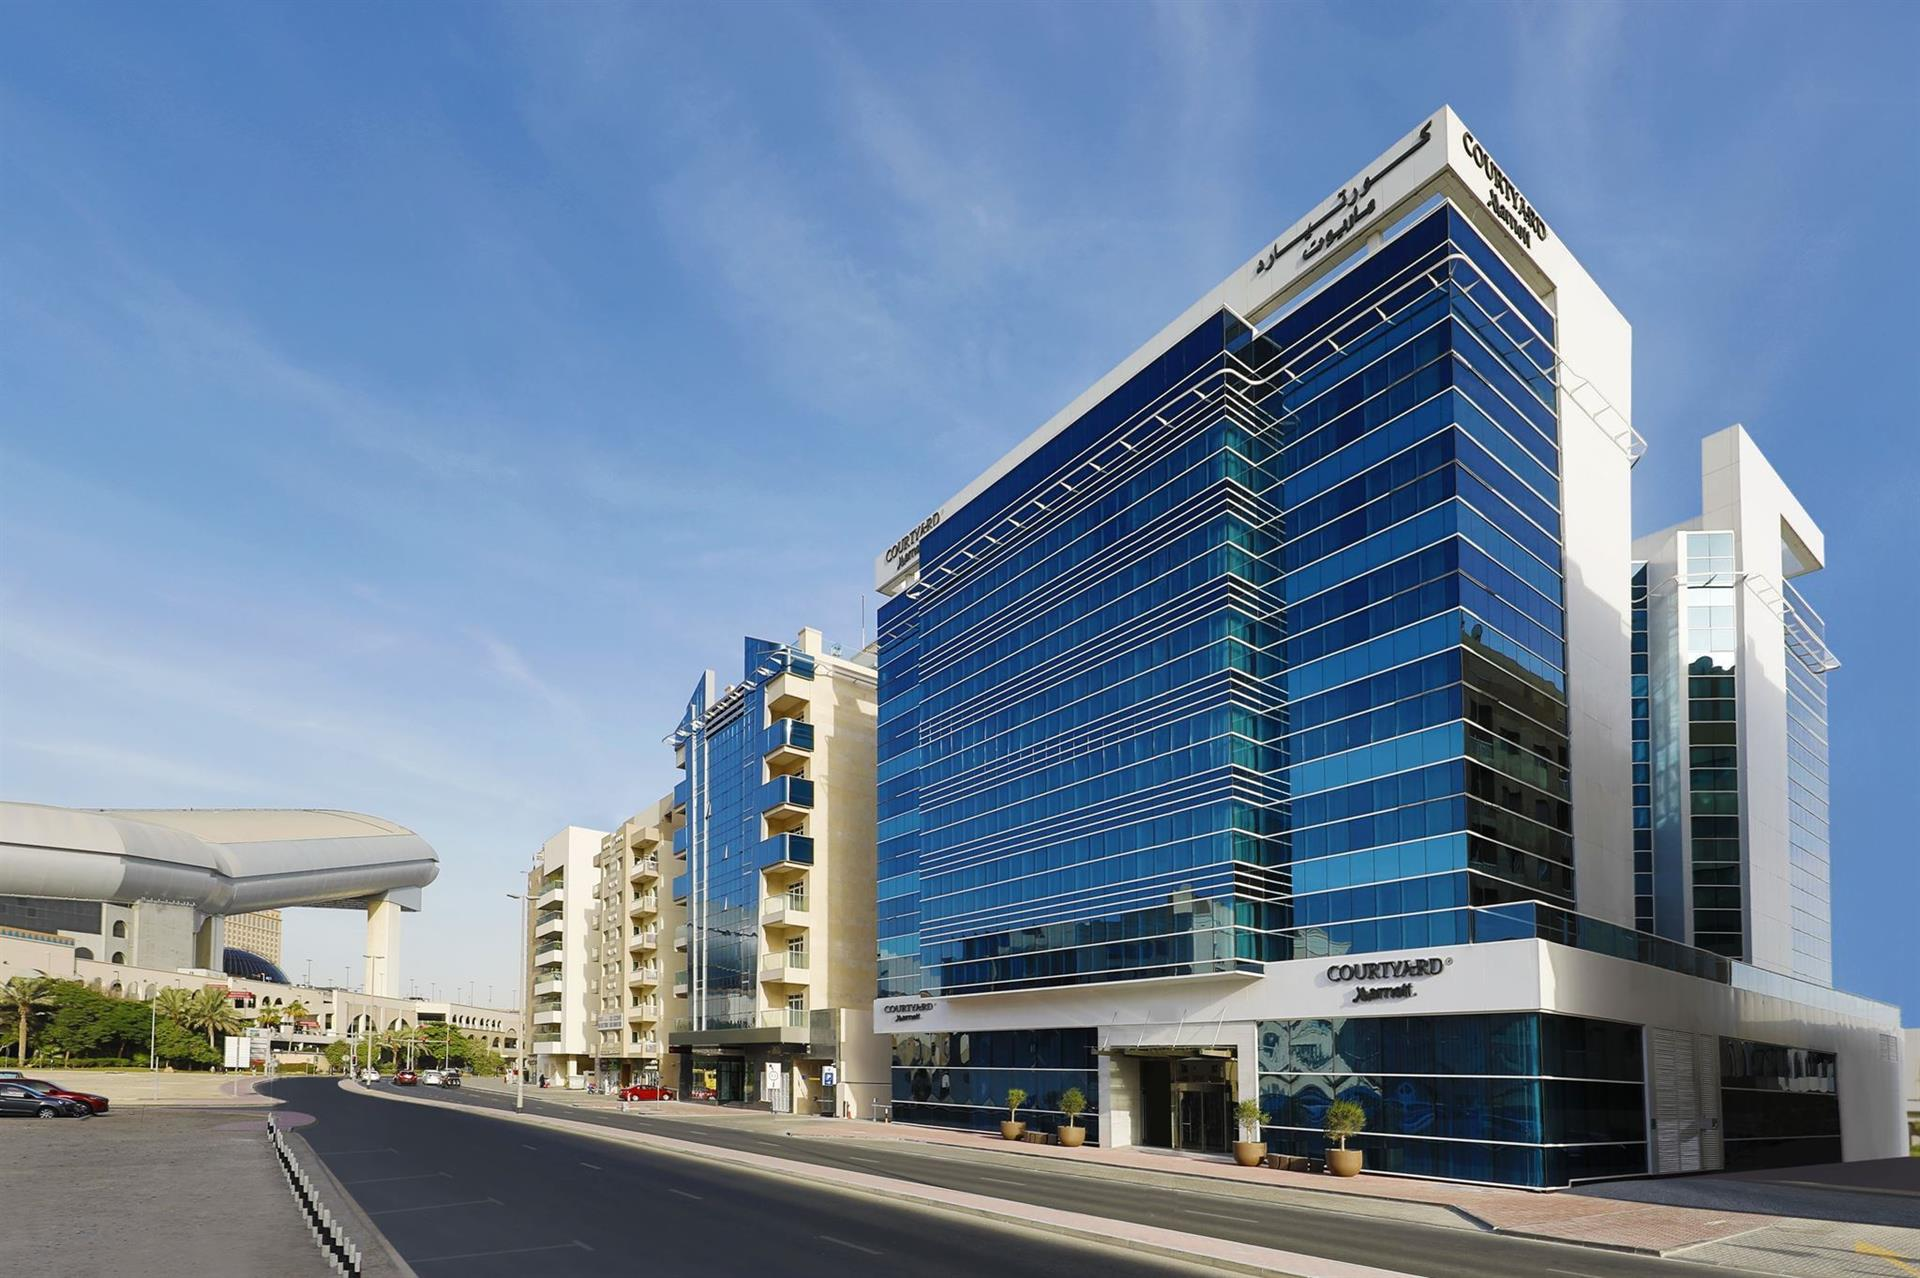 COURTYARD BY MARRIOT AL BARSHA